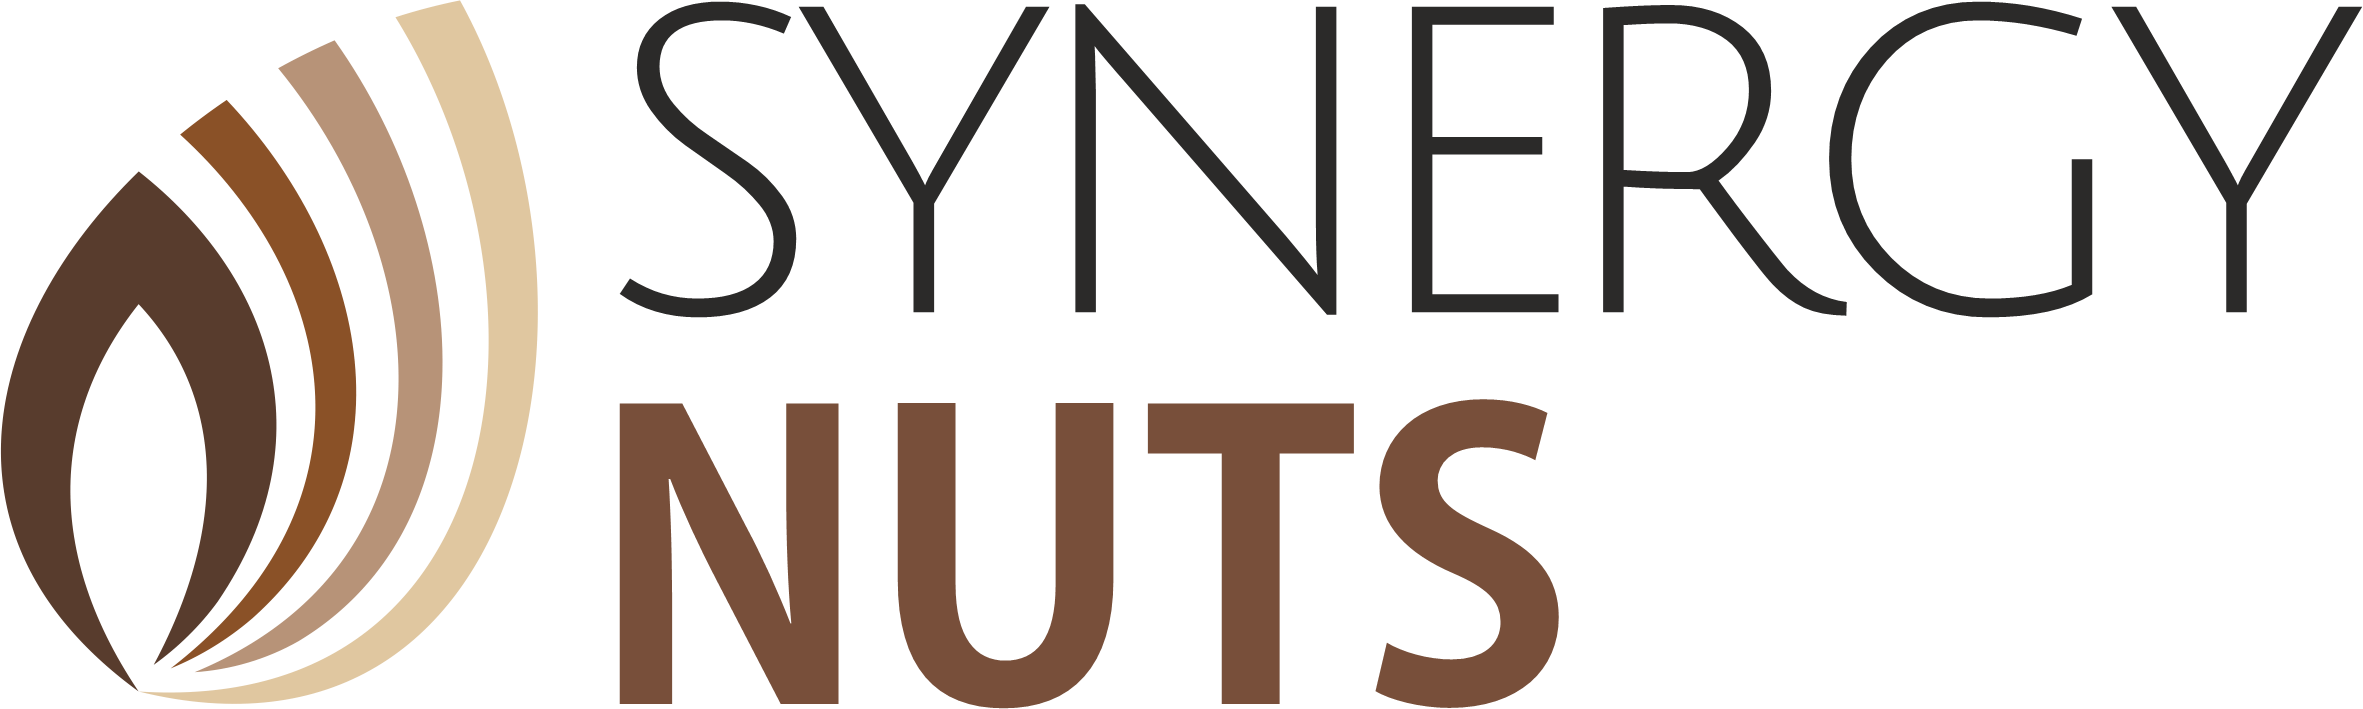 cropped Synergynuts Logo